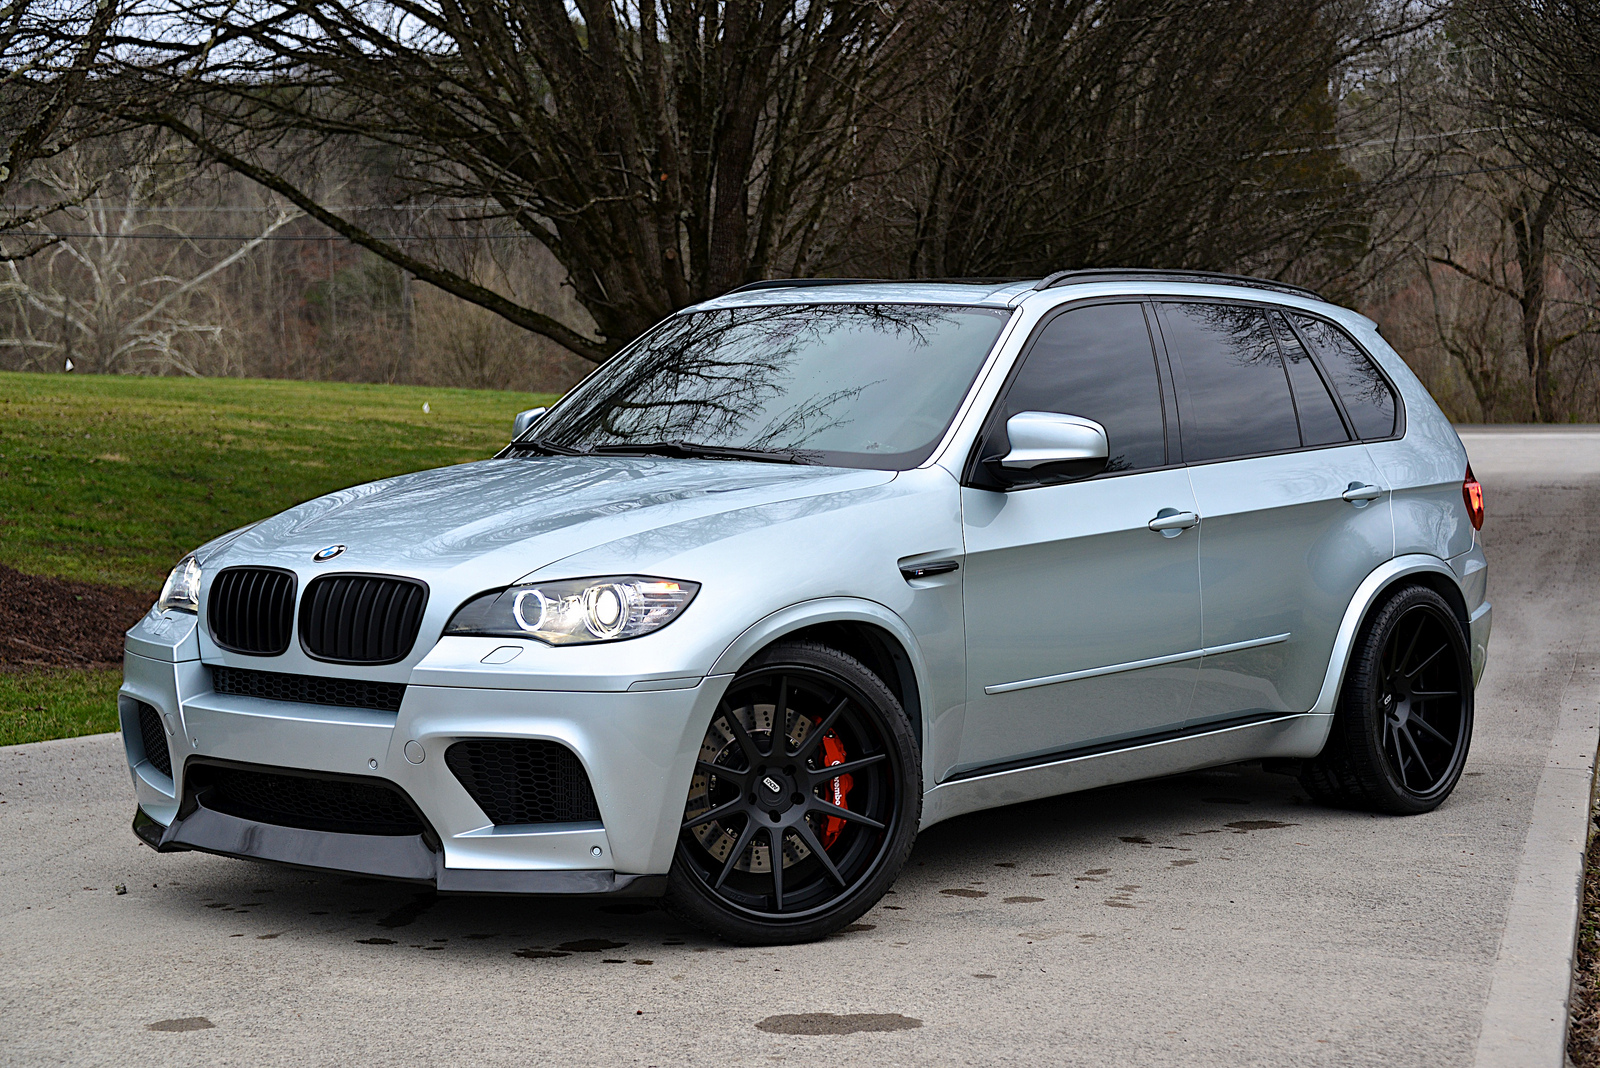 2011 Bmw X5 M Information And Photos Momentcar